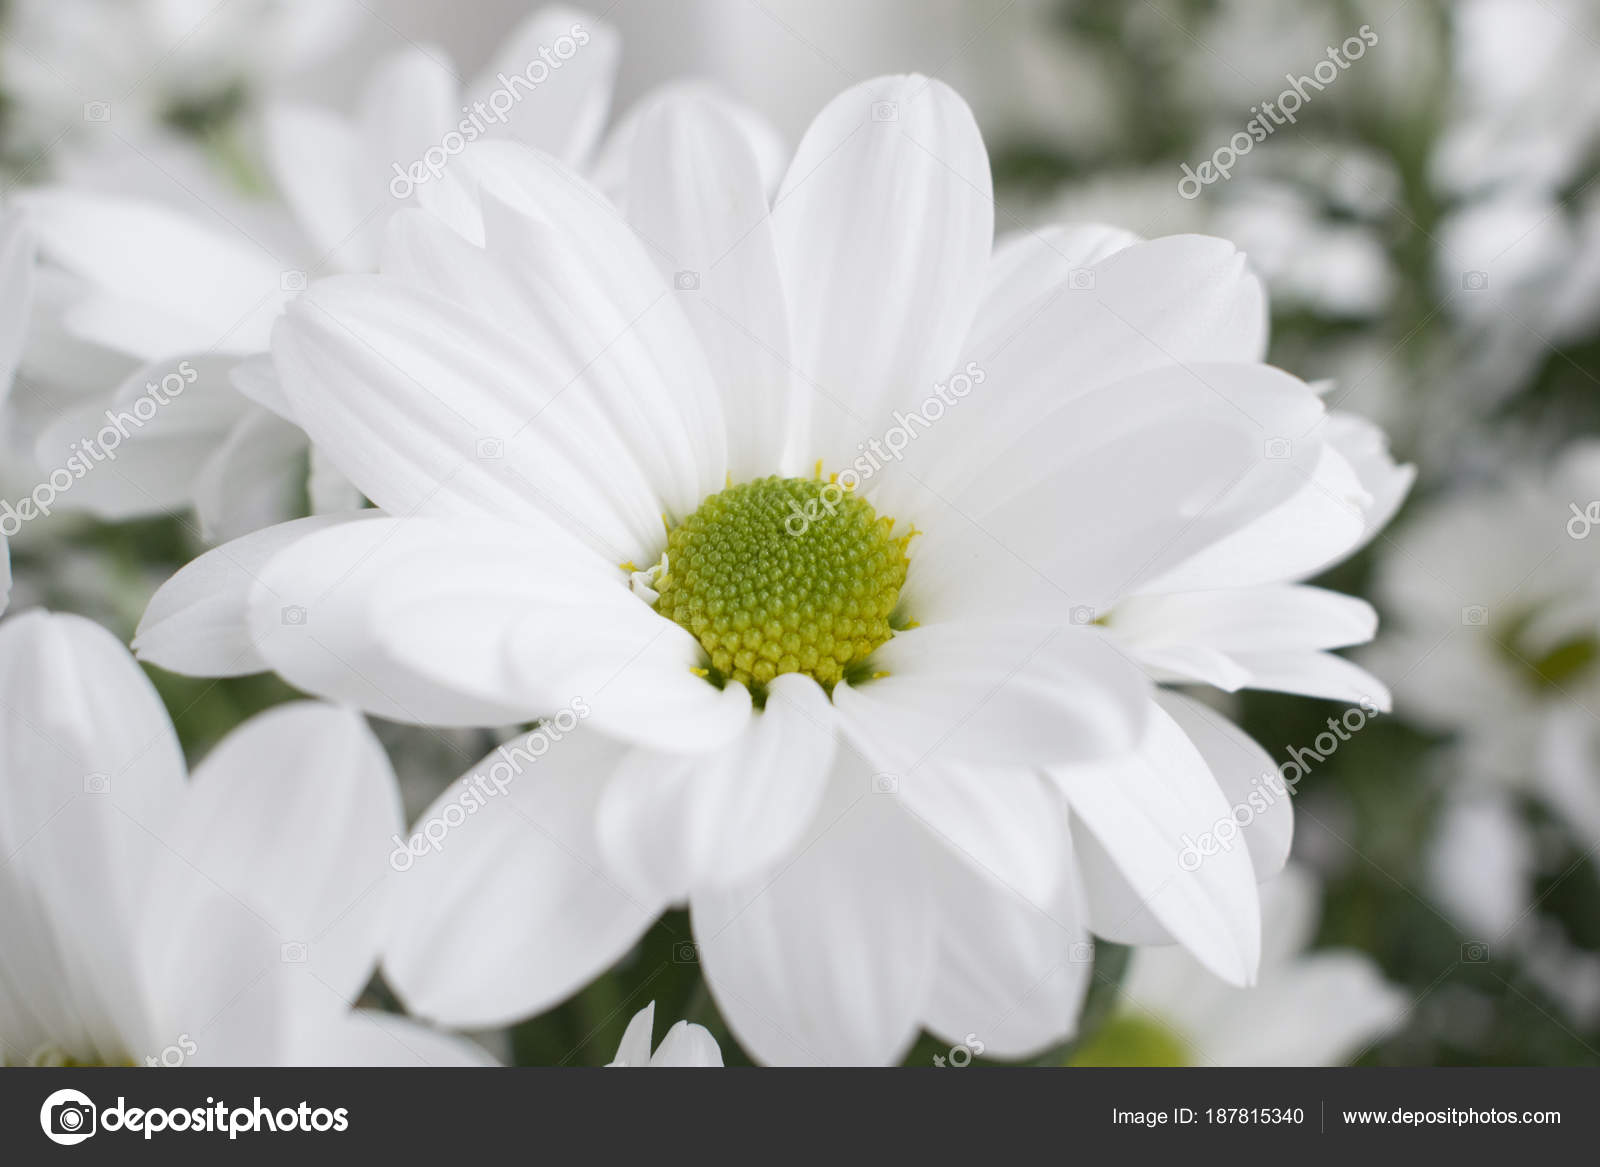 Closeup Of White Chrysanthemum Flower With Green Blurred Background